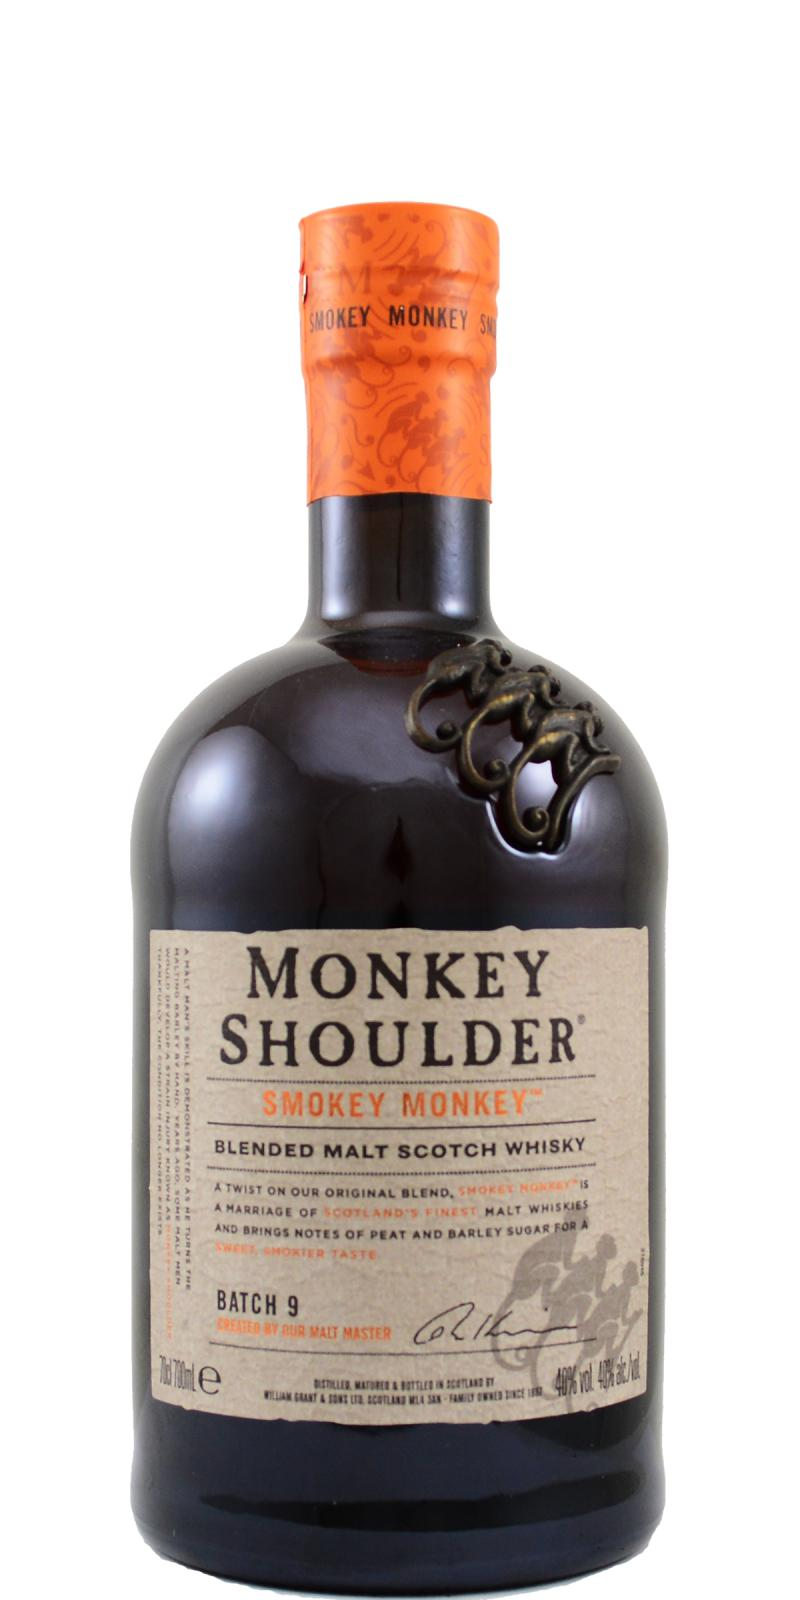 Monkey Shoulder Batch 9 - Smokey Monkey